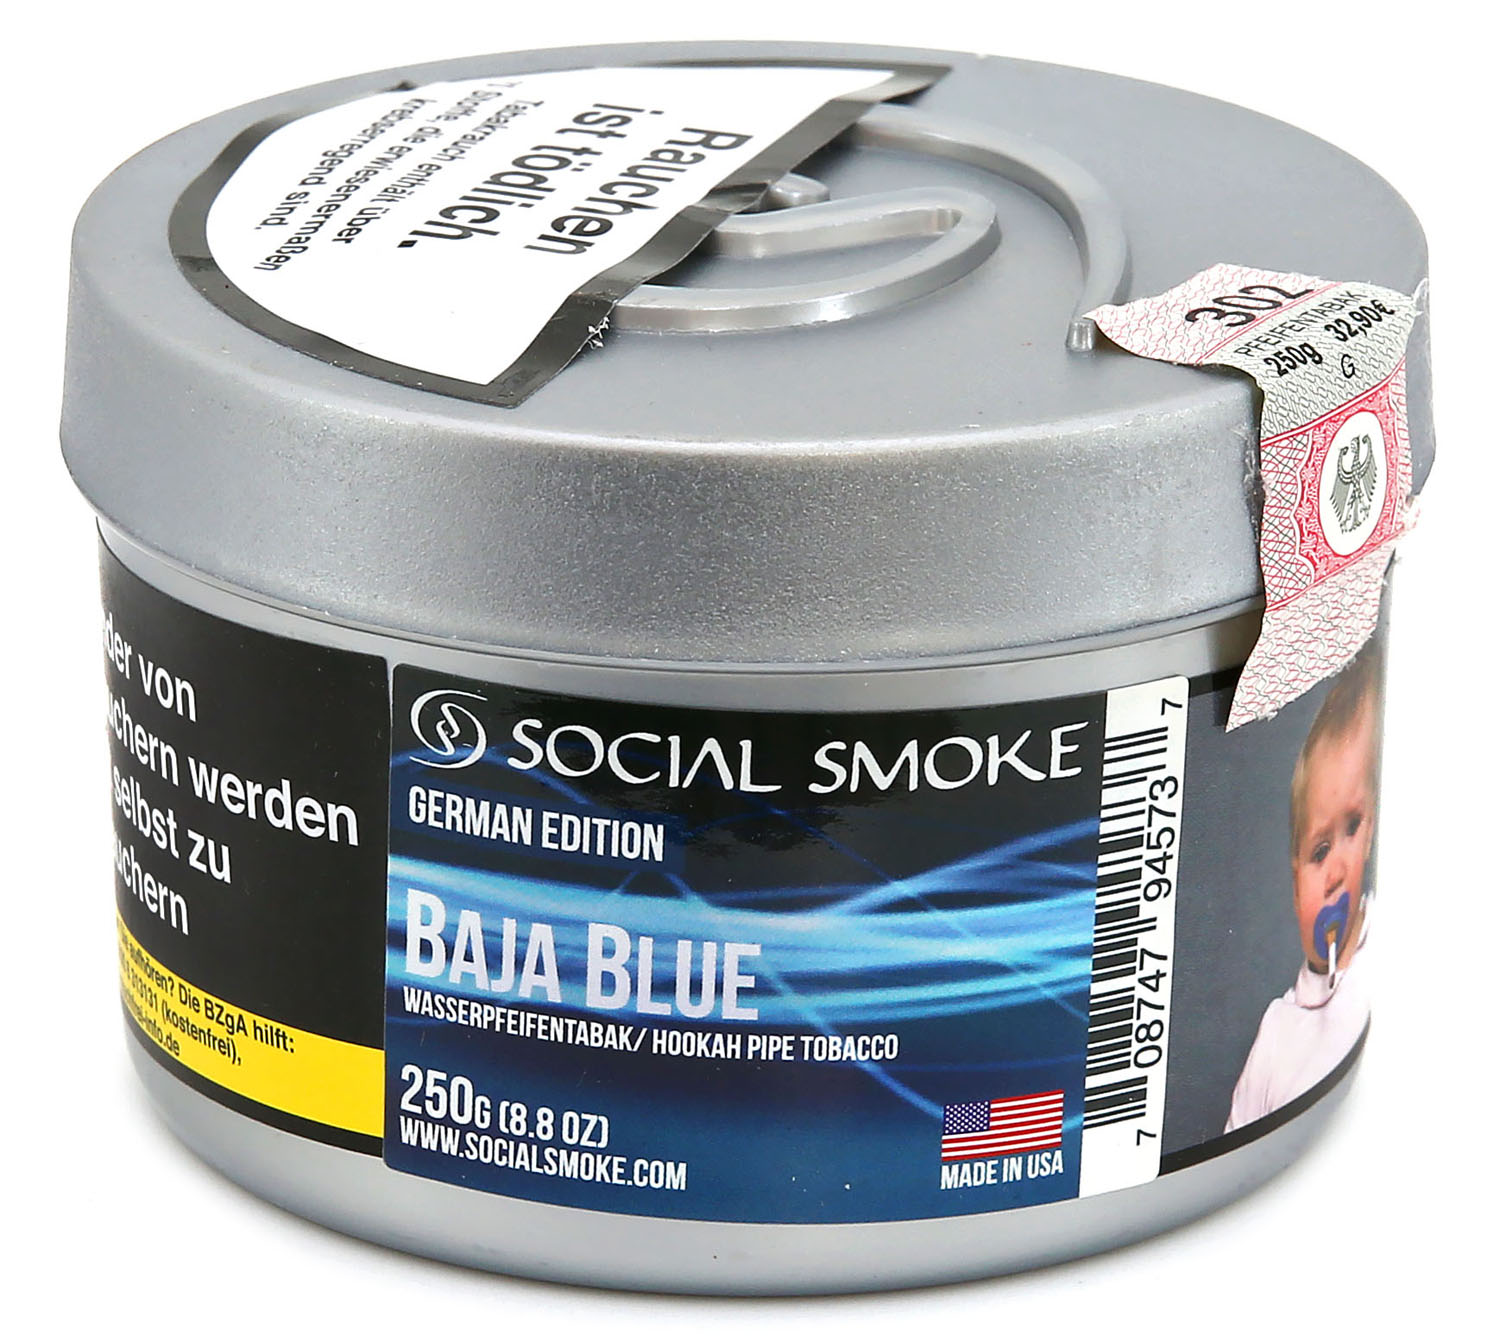 social smoke baja blue shisha tabak 250g social smoke 250g social smoke shisha tabak. Black Bedroom Furniture Sets. Home Design Ideas